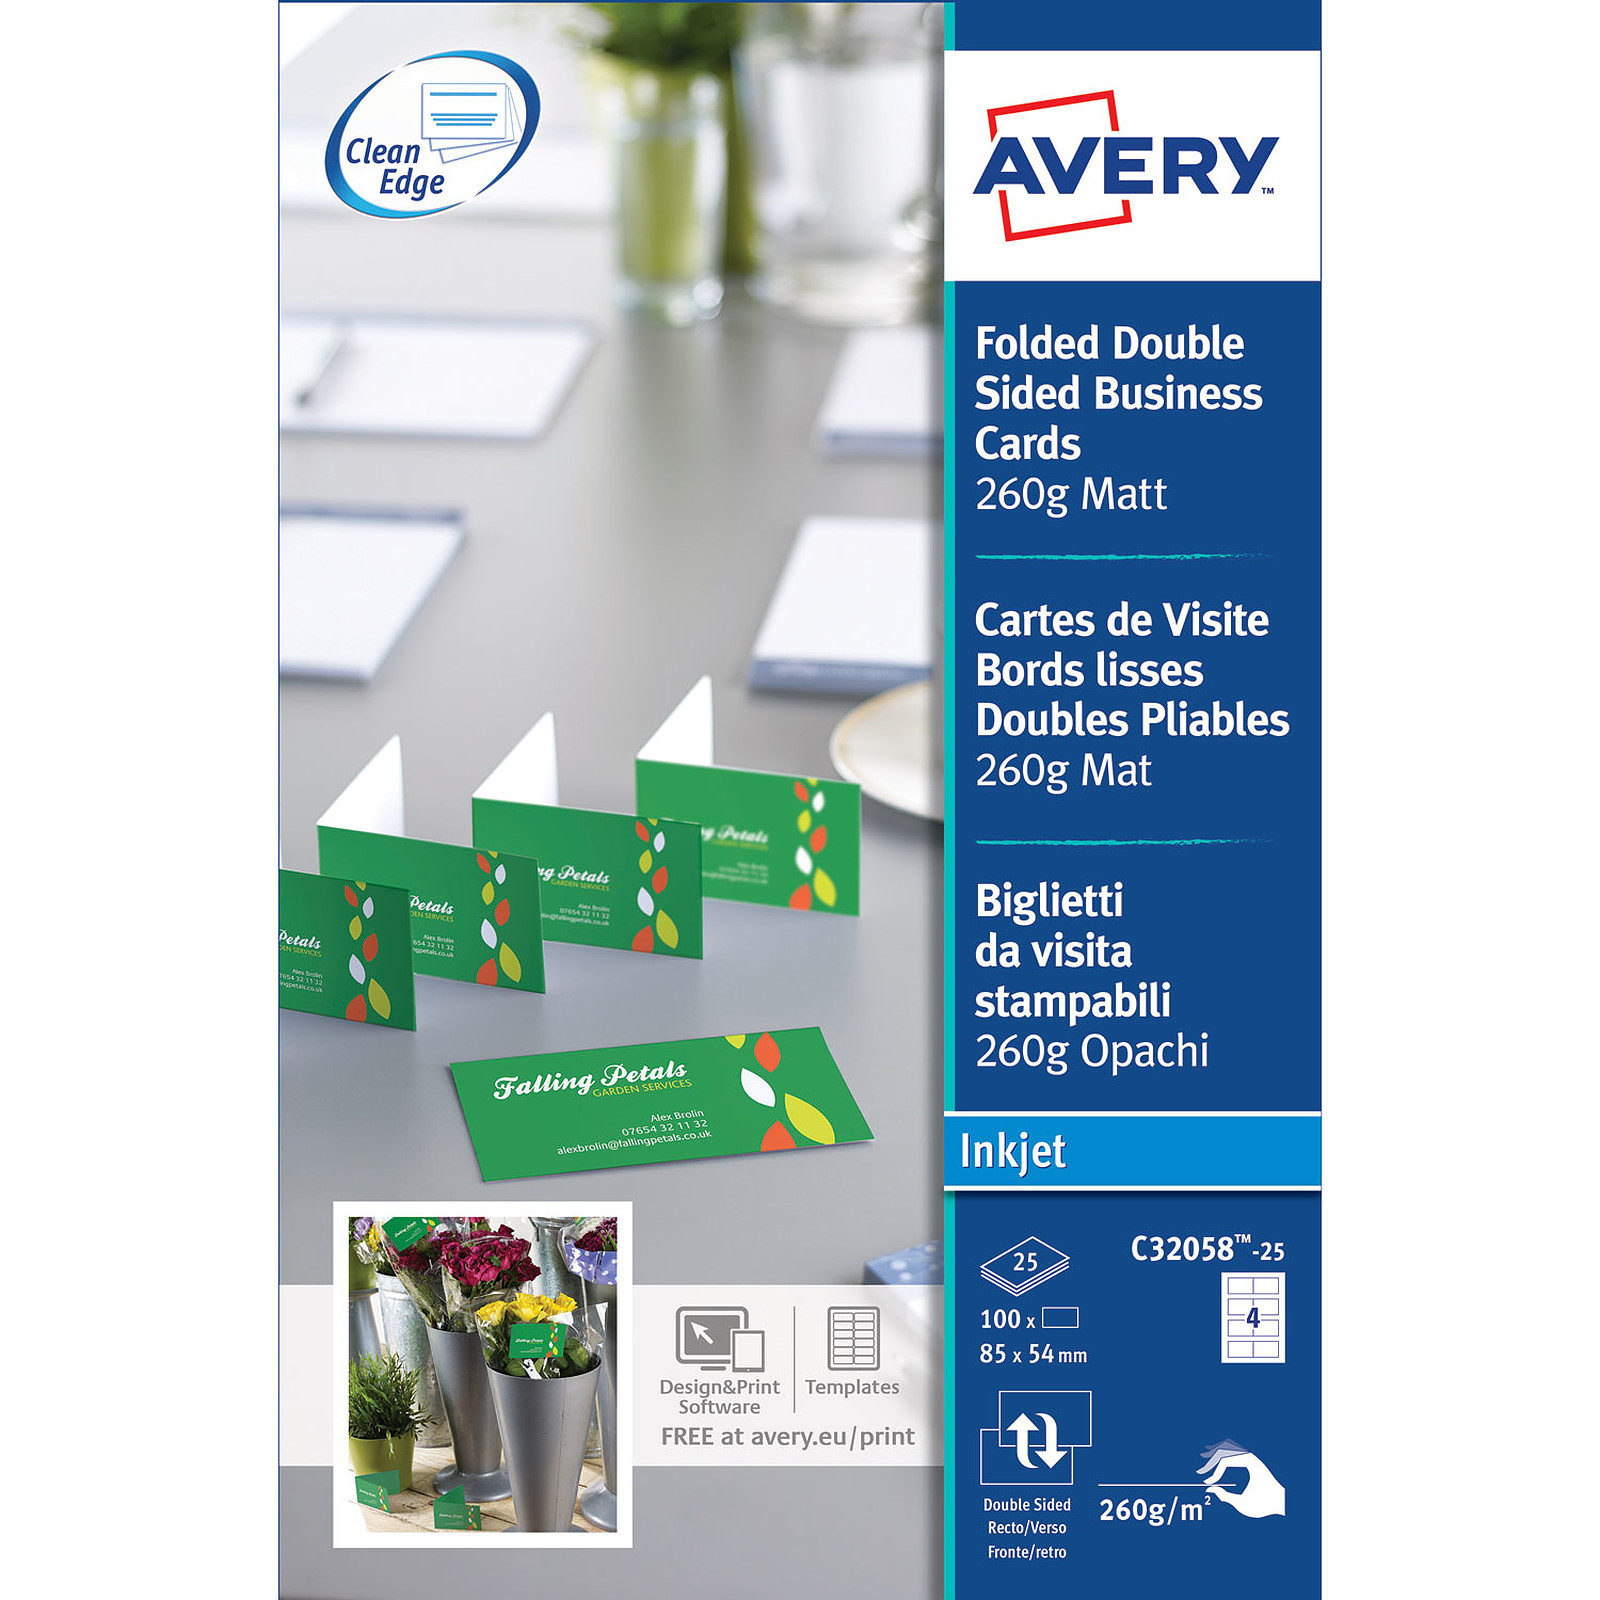 Avery QuickClean 100 Cartes De Visite 85 X 54 Mm Doubles